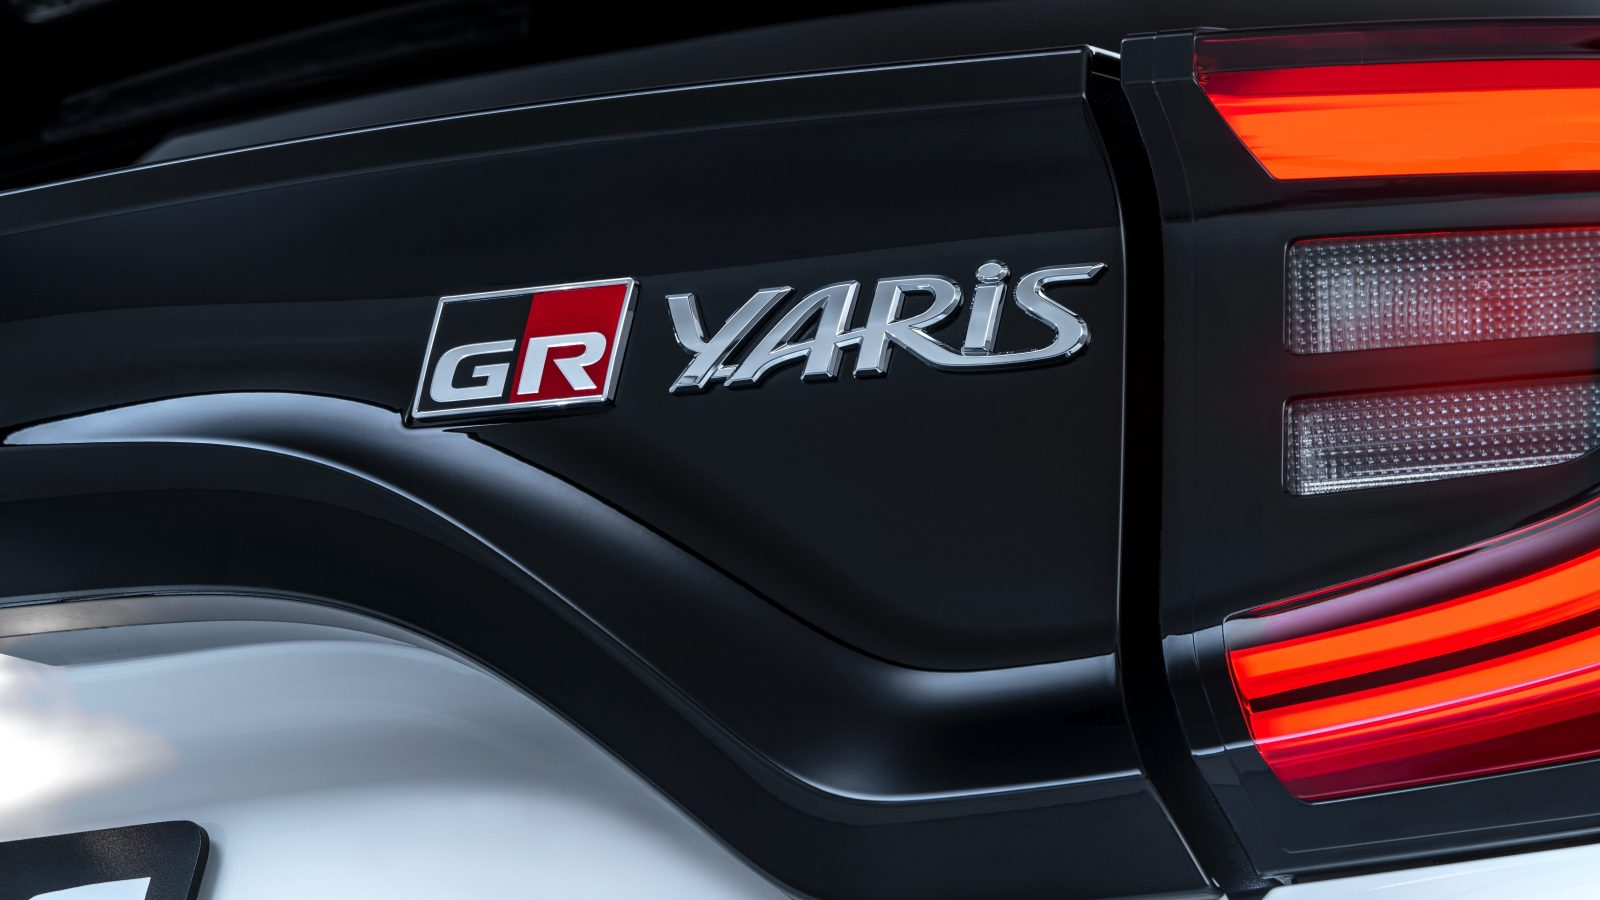 GR Yaris badge